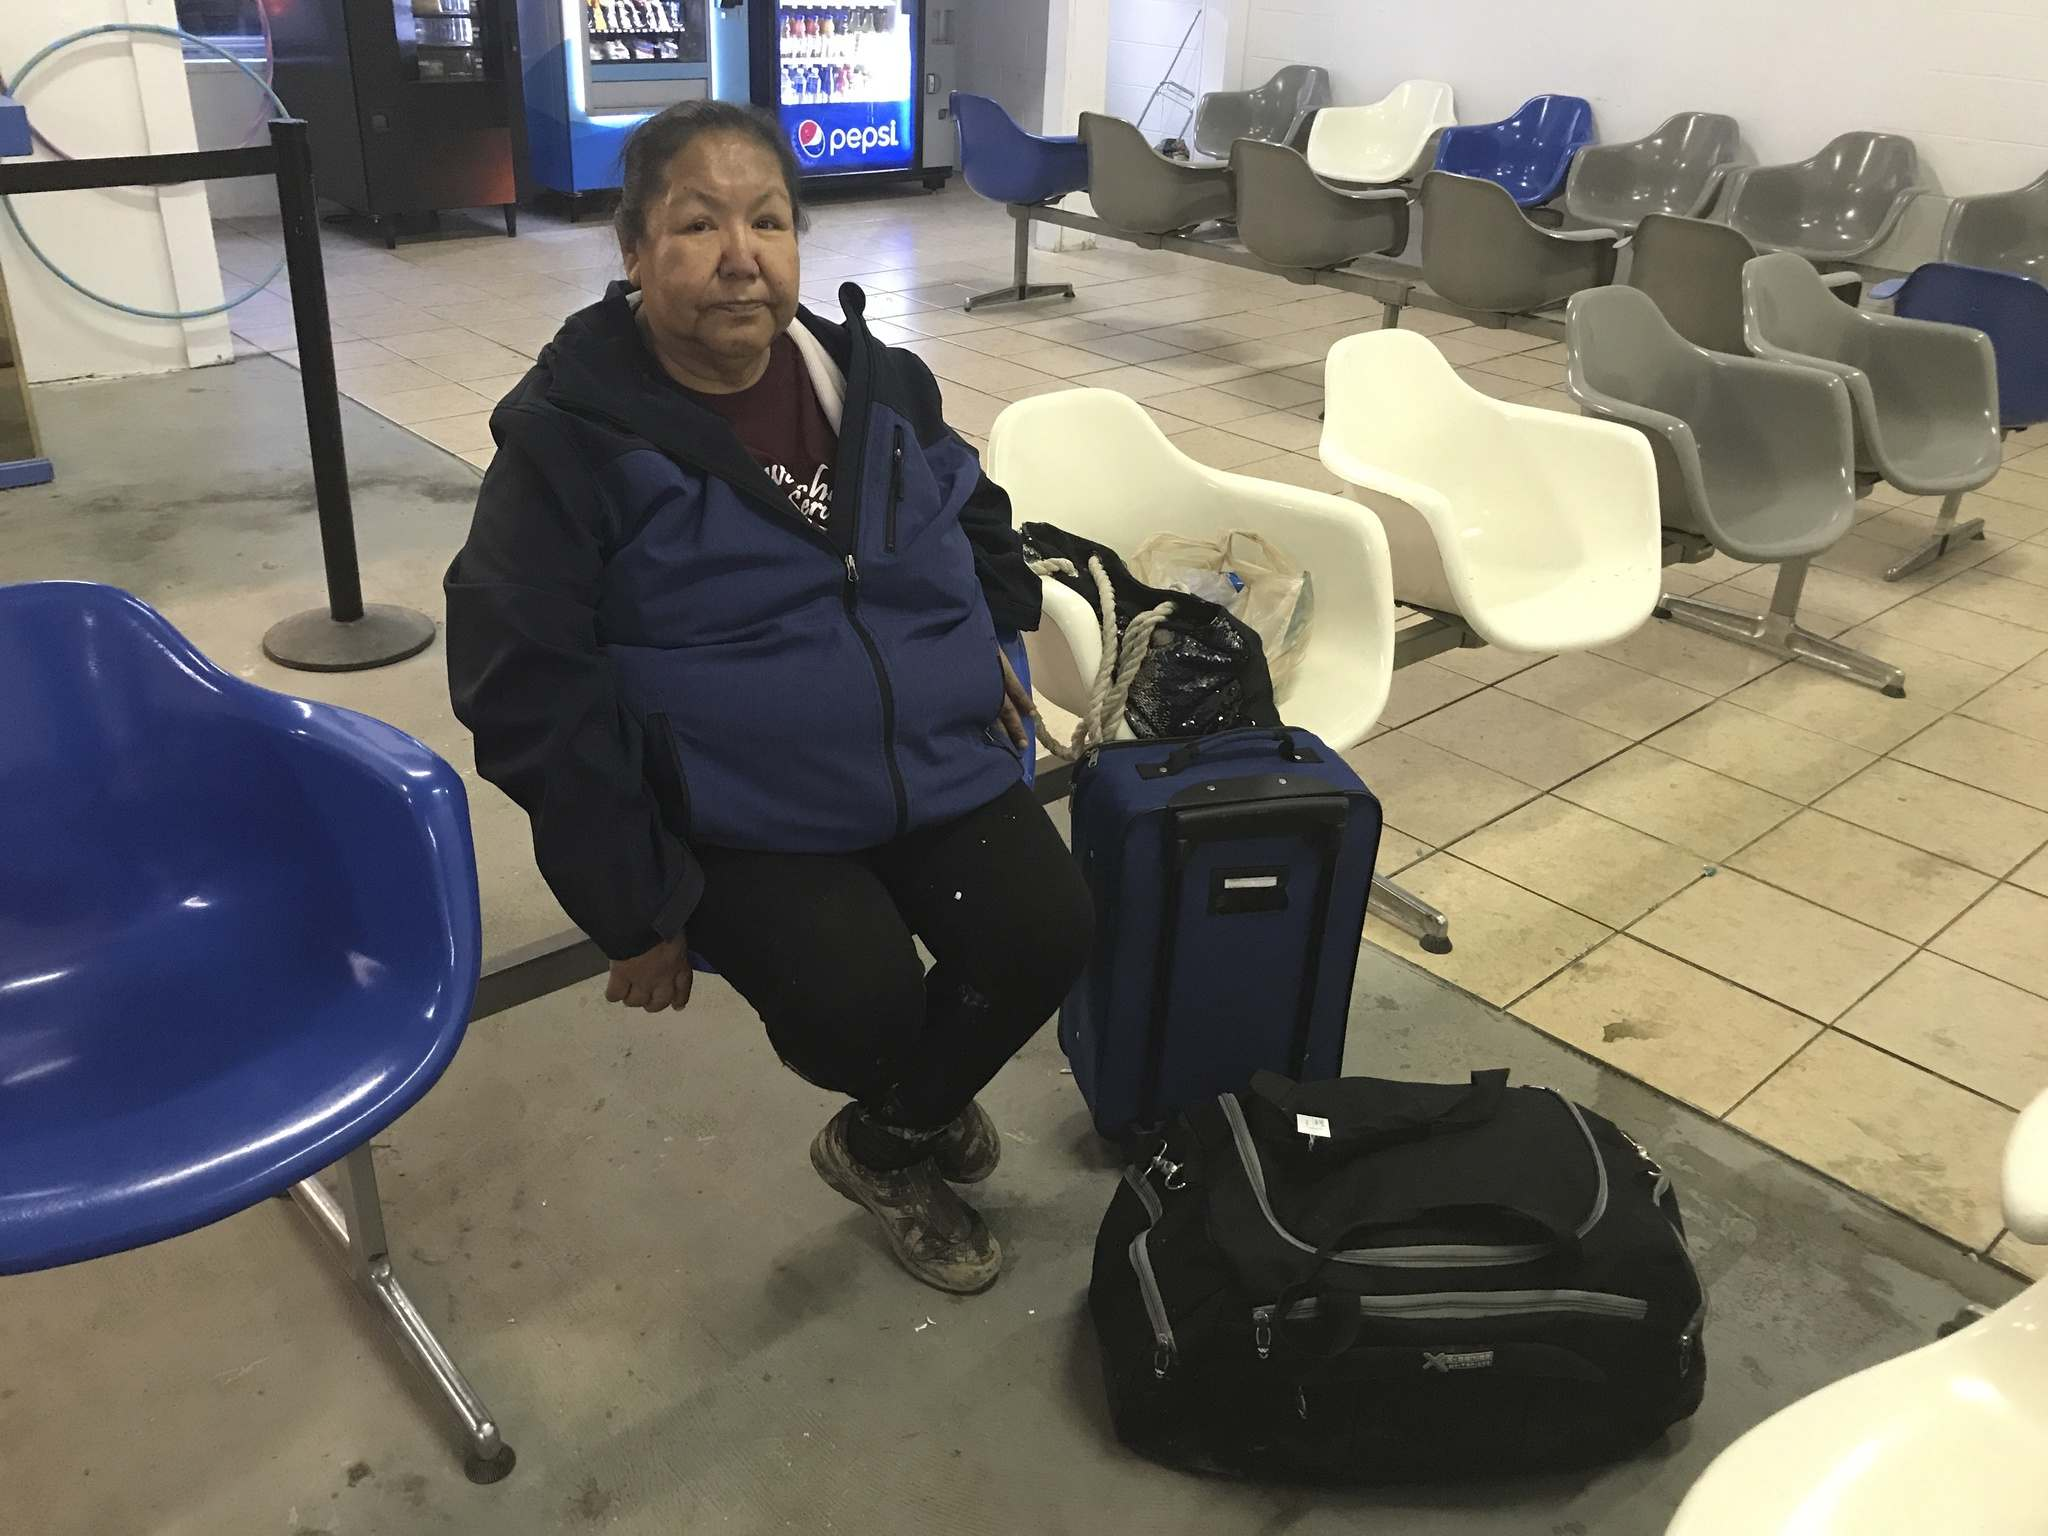 Virginia Monias arranges transportation for patients travelling to Winnipeg for medical treatment. She prefers the bus over driving.